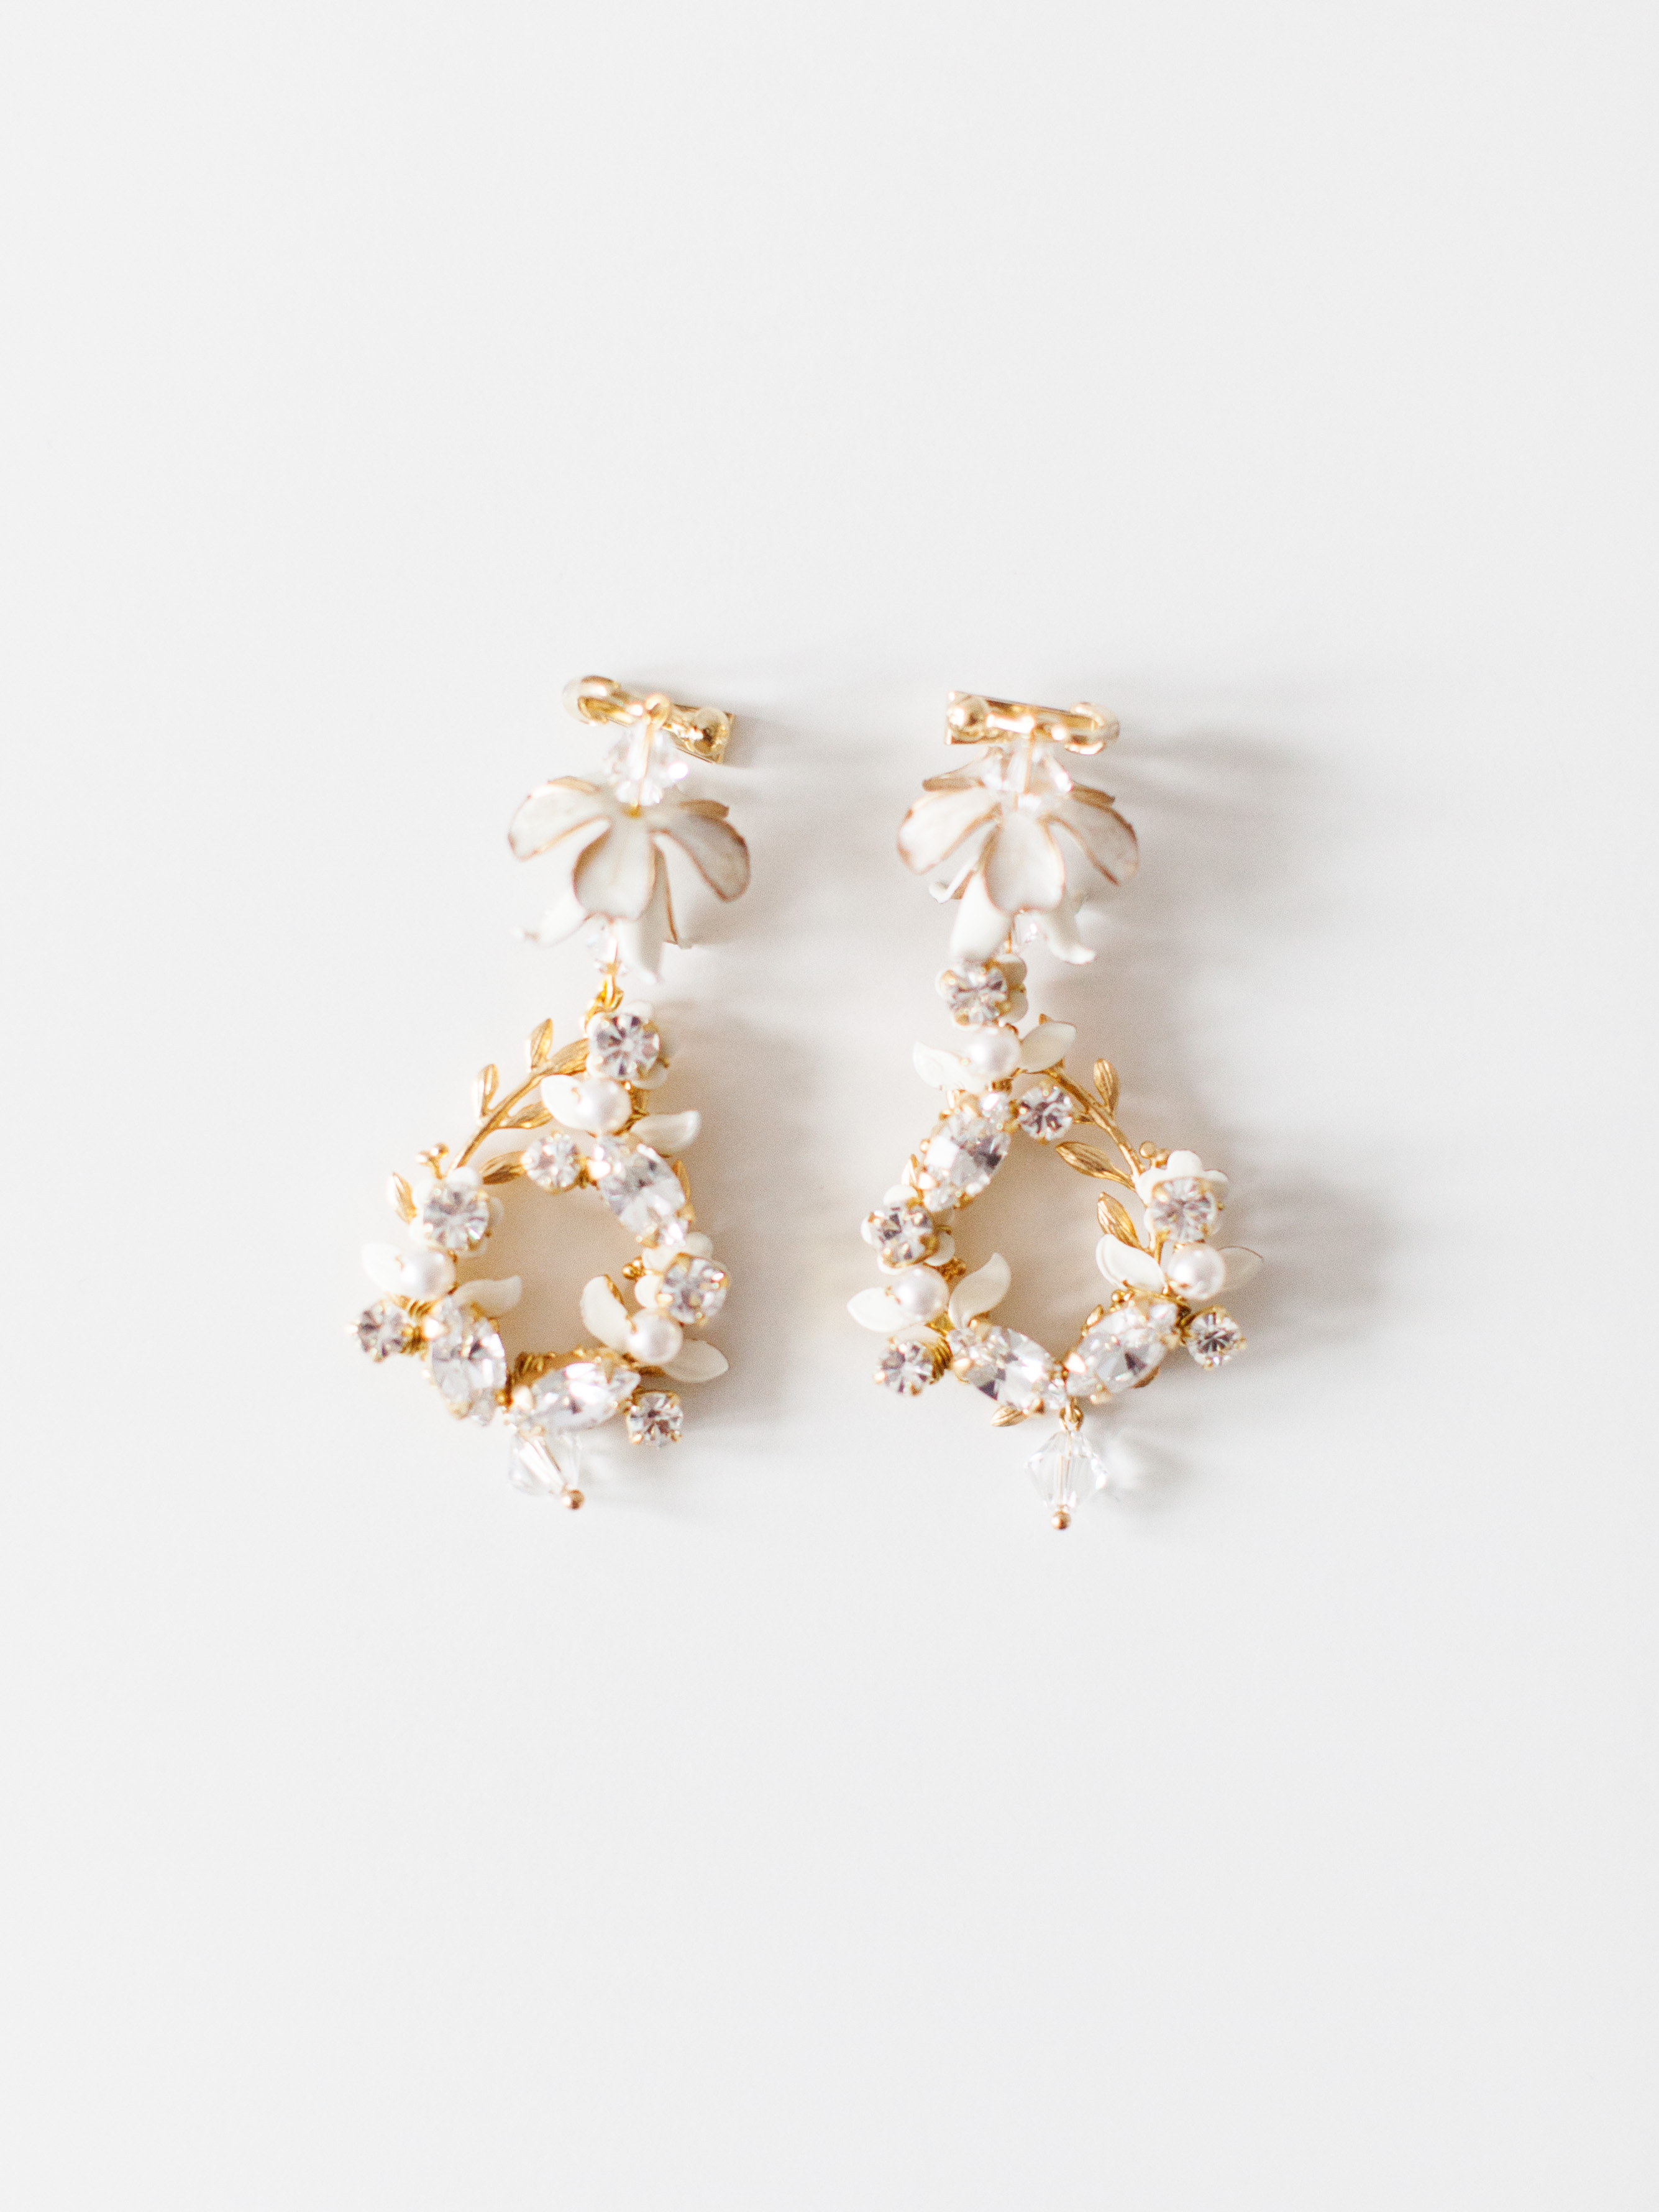 Enfloral chandelier bridal earrings by sibo designs couturenl sibo designs 2018 collection style 722 crystal chandelier bridal earrings sibodesigns arubaitofo Images